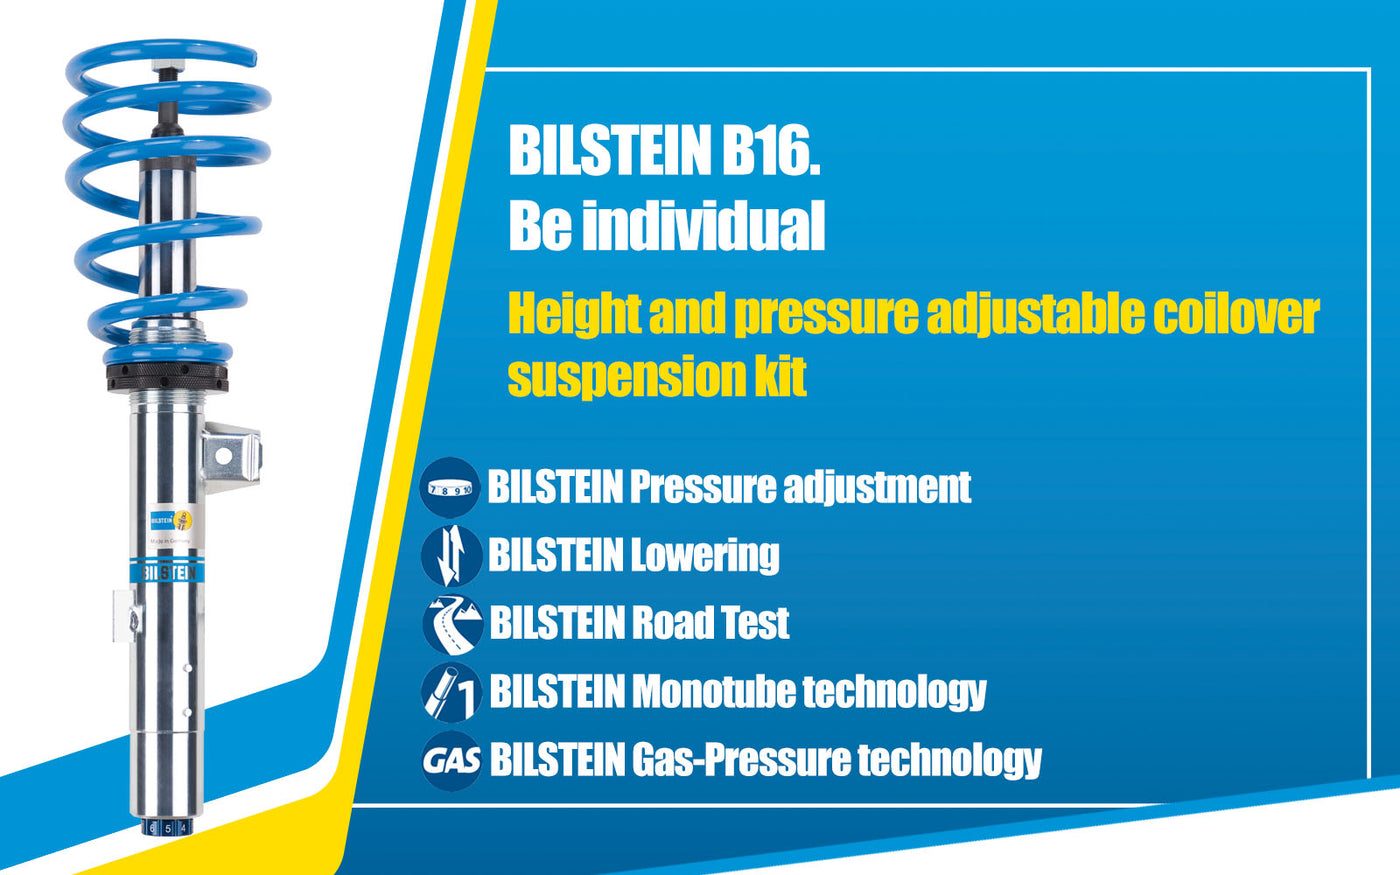 Bilstein Shocks co uk | The Number 1 Supplier For Bilstein Suspension